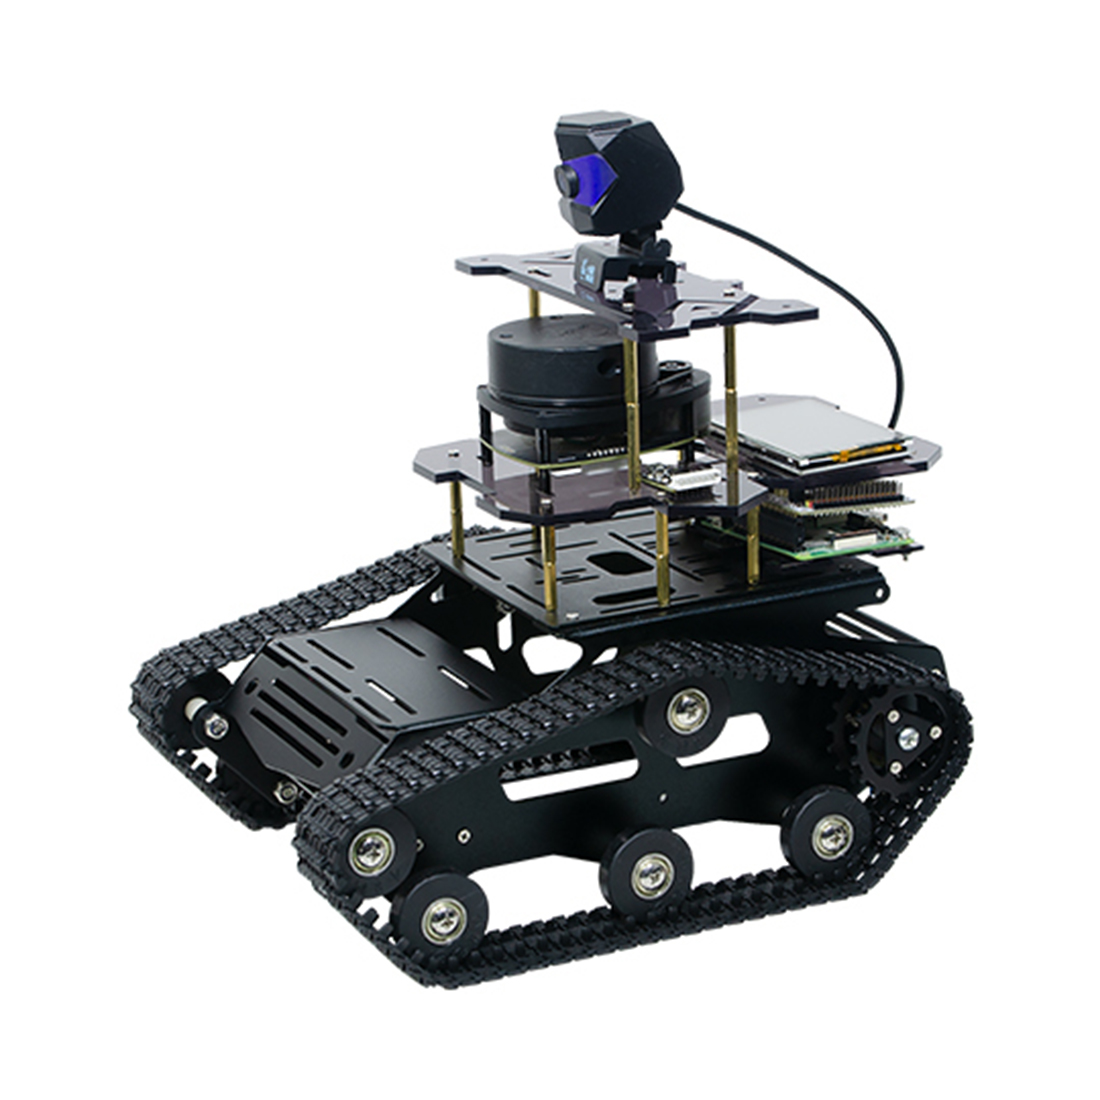 DIY Smart Programmable Robot Tank Chassis Car with Laser Radar for Raspberry Pi 4 (2G) For Kids Adults Gift - Black 2